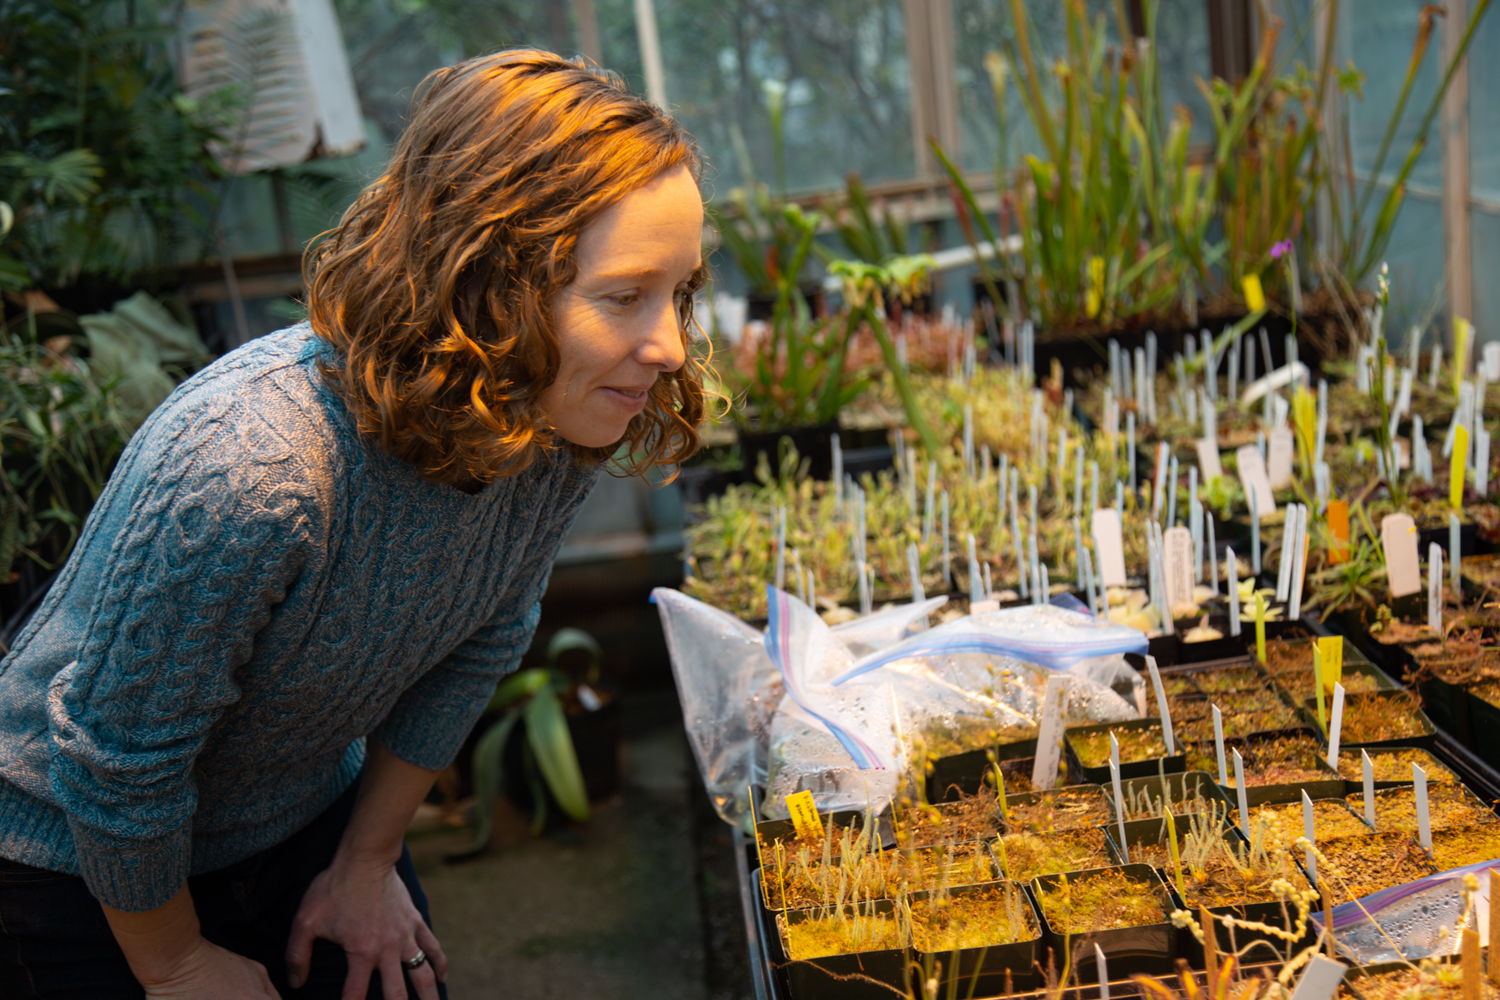 Jennifer Gremer looks at some sprouts